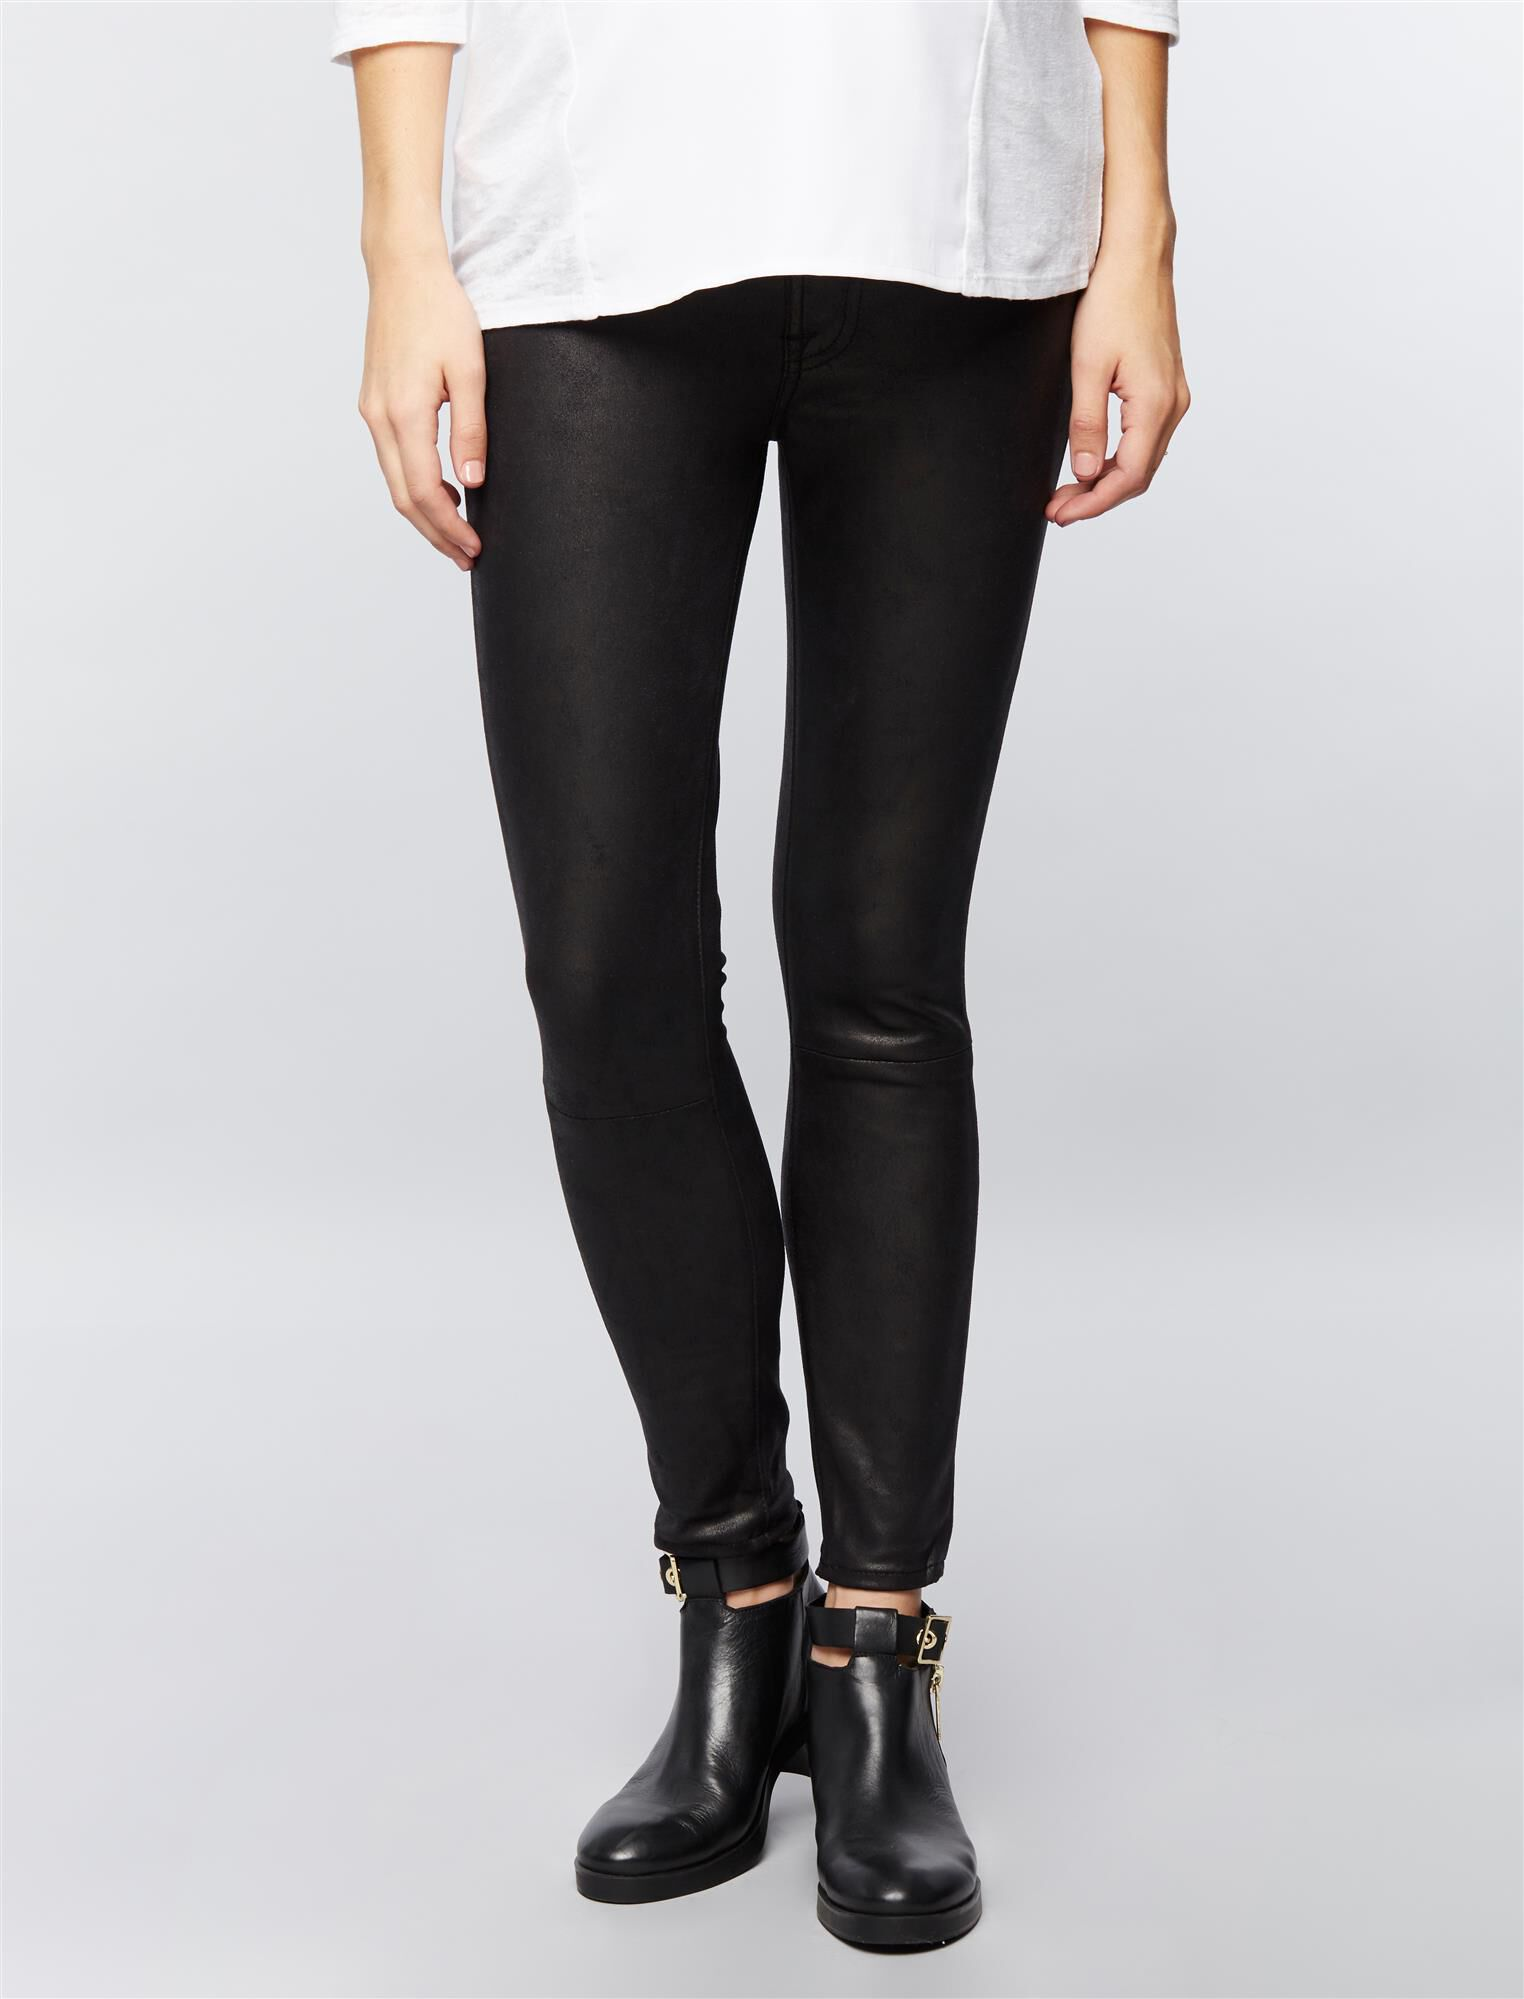 7 For All Mankind Leather Like Maternity Pants